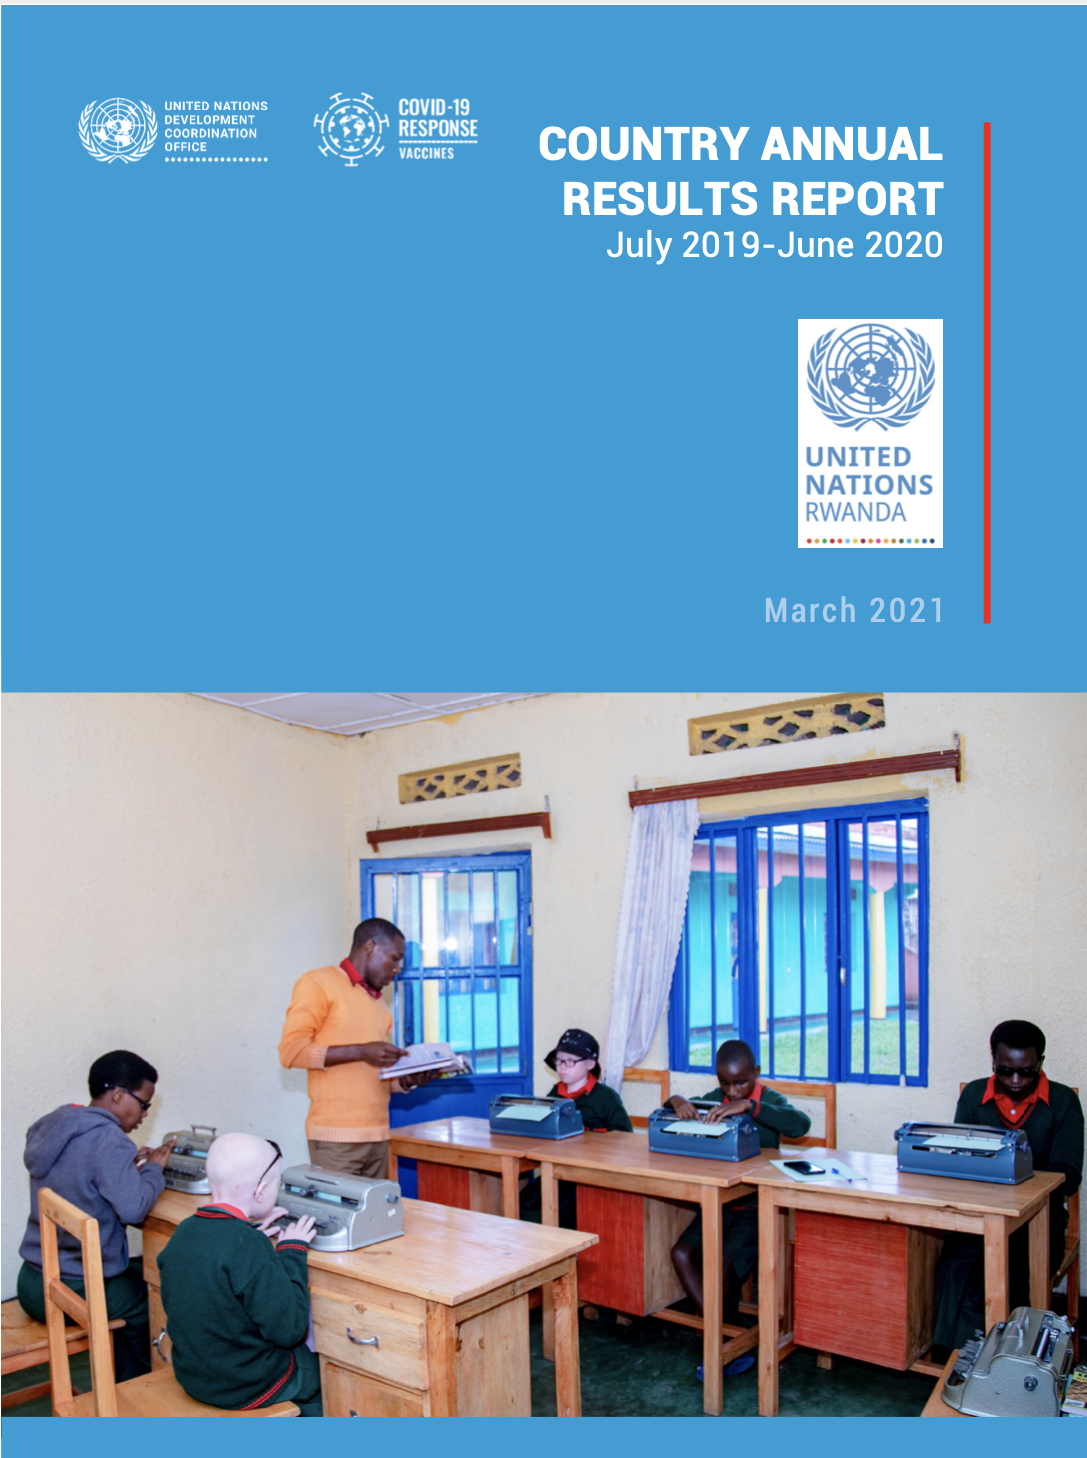 One UN Country Annual Results Report 2019-2020